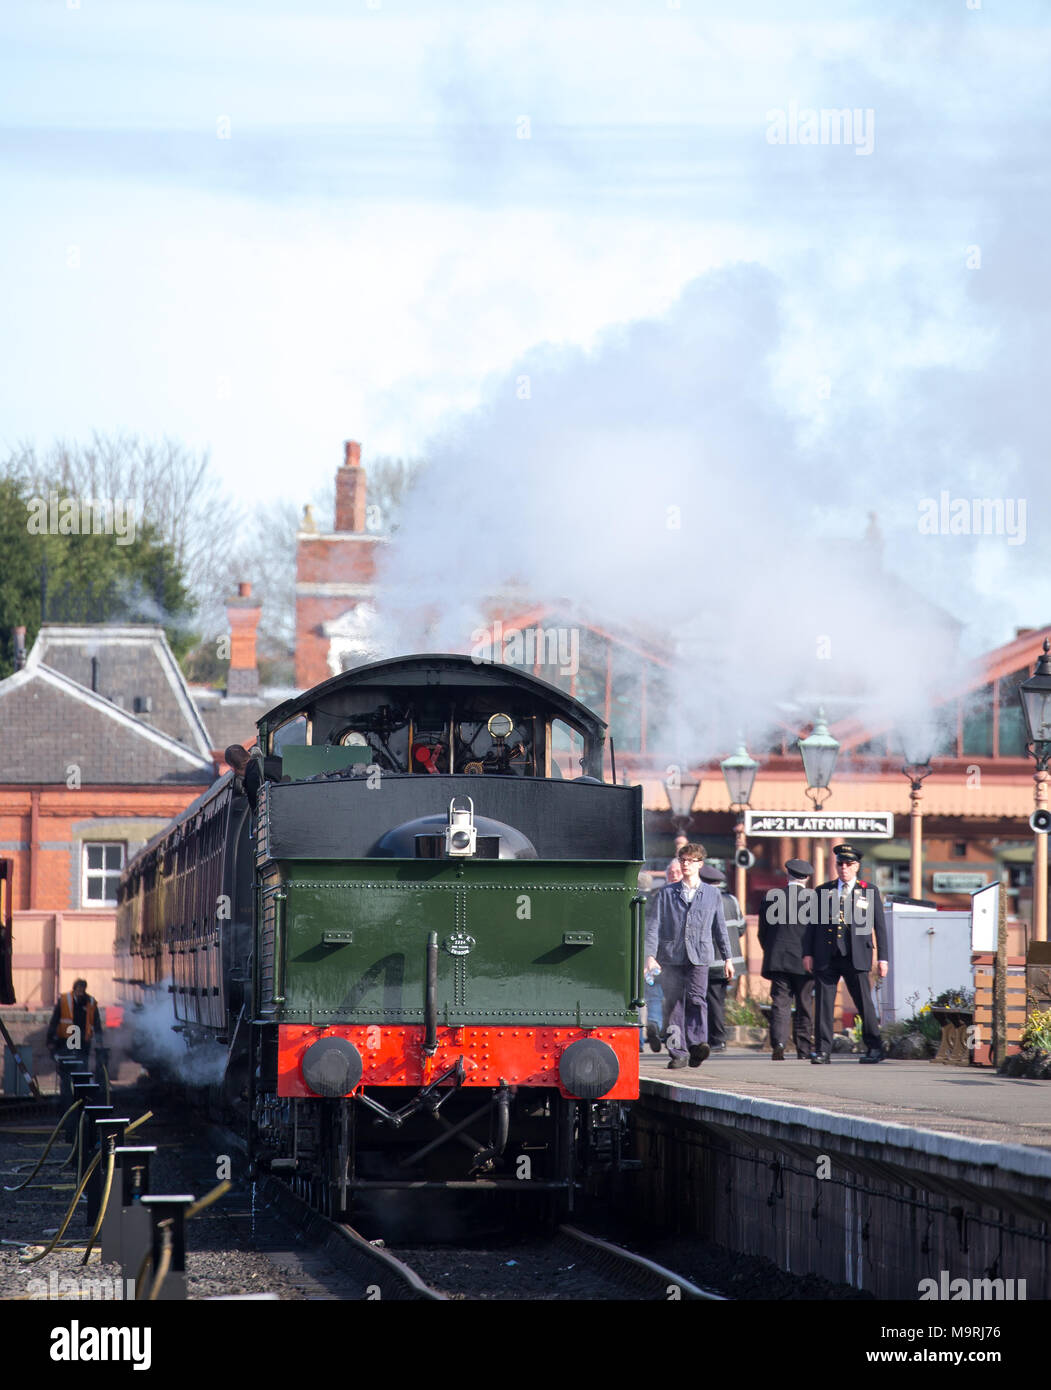 Portrait shot of UK steam locomotive in plumes of steam & smoke as crew prepare for bright Sunday morning departure from SVR's Kidderminster station. - Stock Image